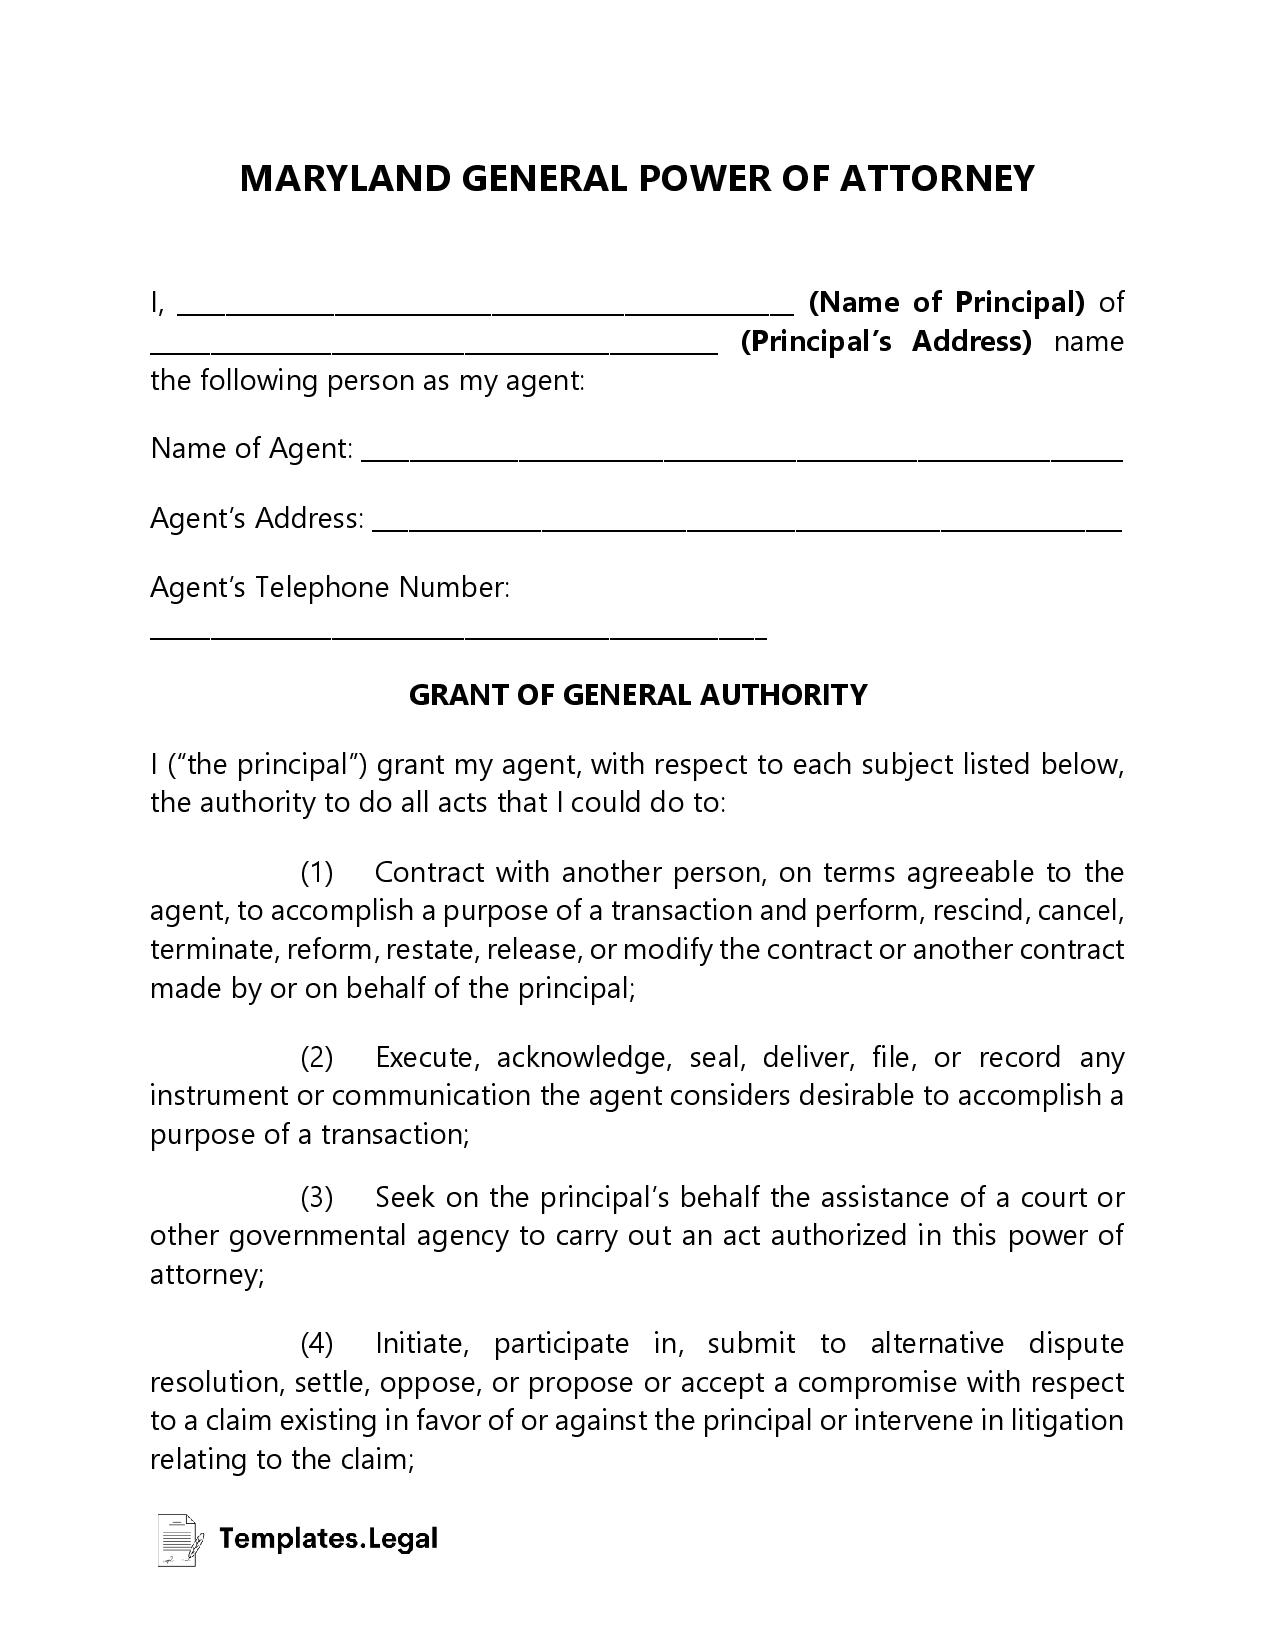 Maryland General Power of Attorney - Templates.Legal